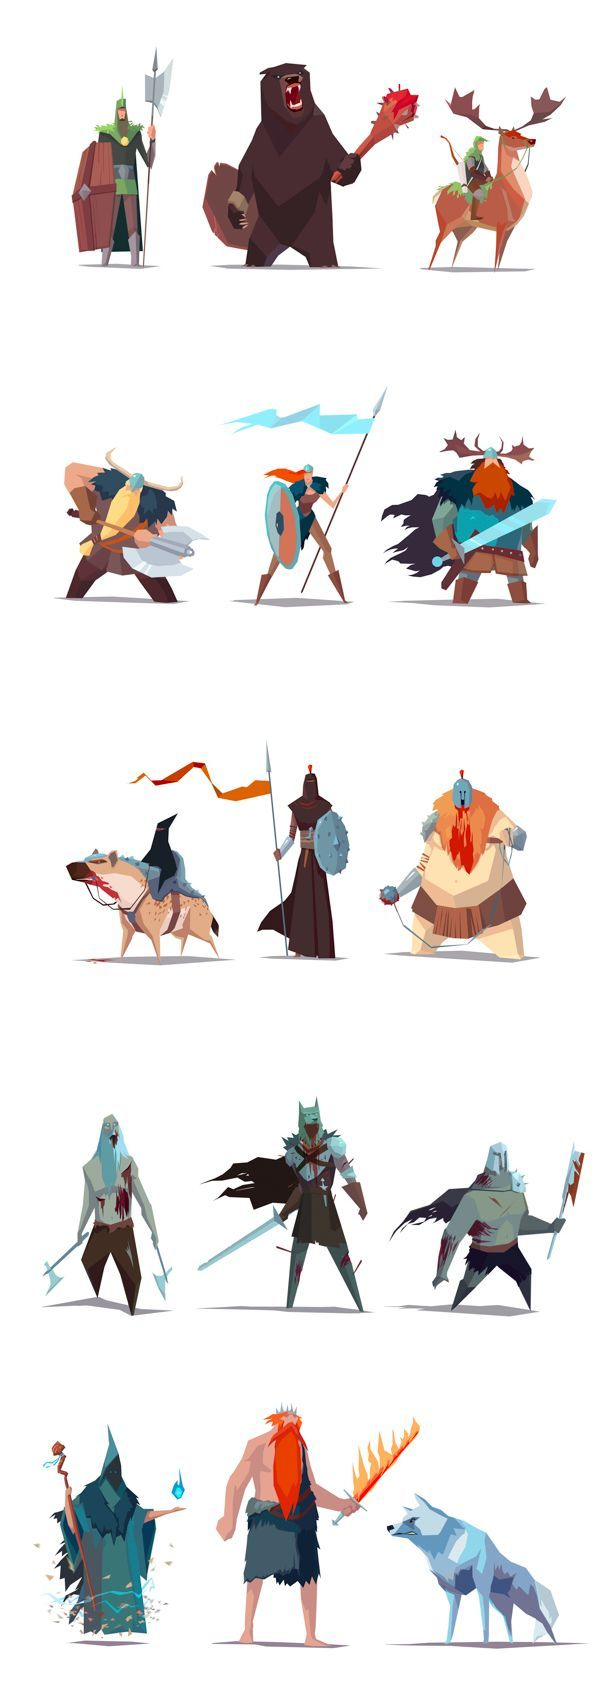 RTS game - Visual Development by Ariel Belinco, via Behance: